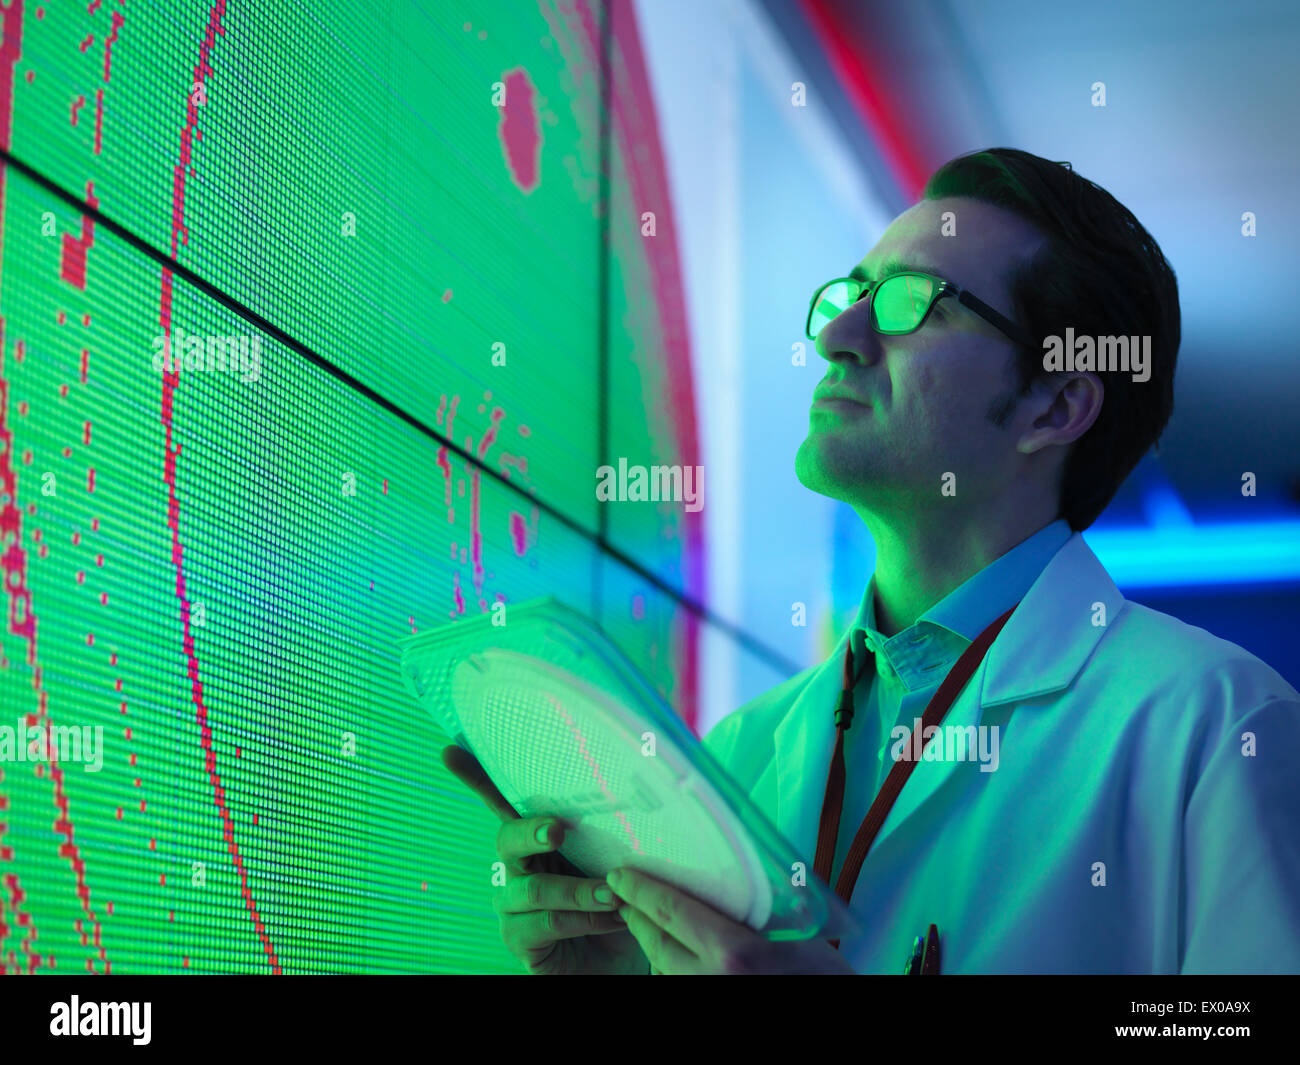 Male scientist with silicon wafer studying graphical display of wafer on screens - Stock Image